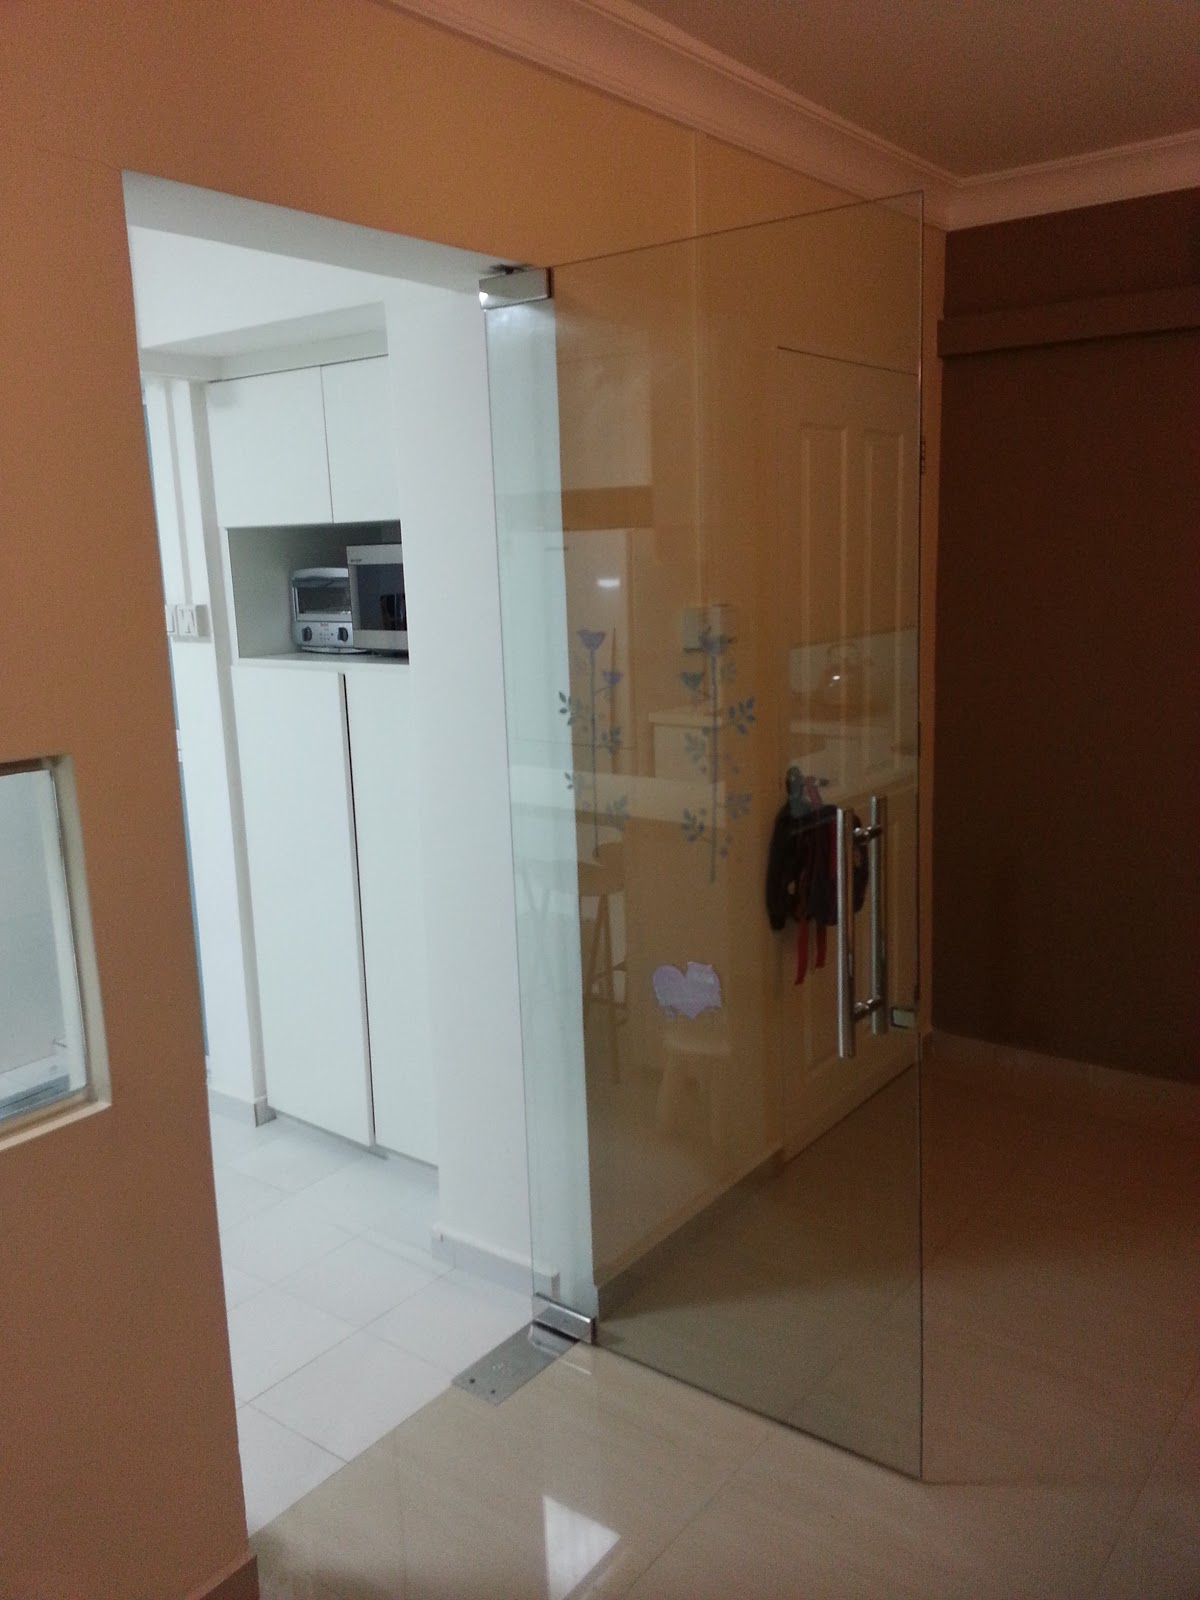 Our hdb flat renovation in 2009 glass door and kitchen living window glass door swing outwards planetlyrics Images